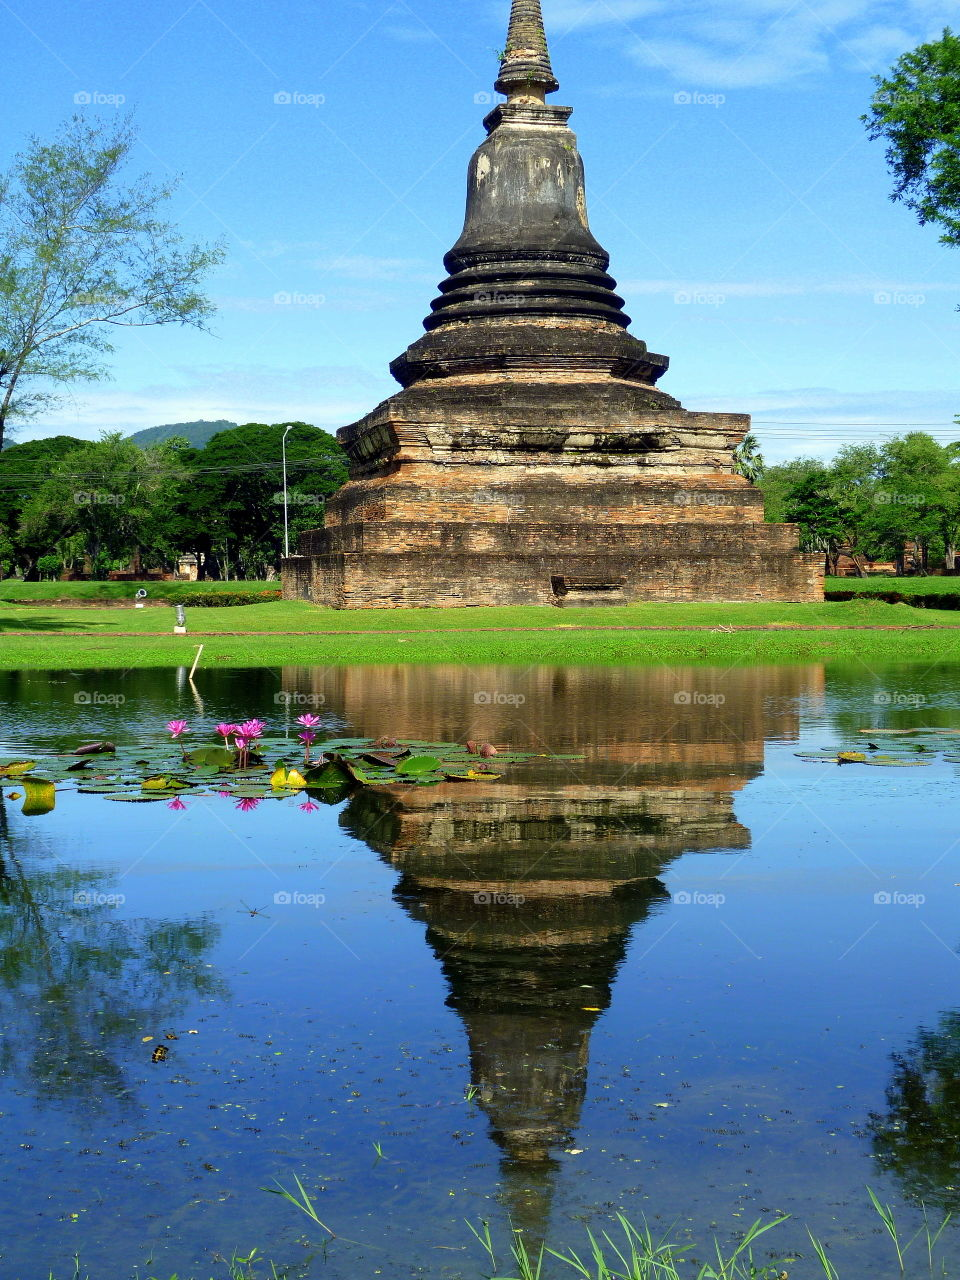 laotiano temple and reflection into the water with flowers